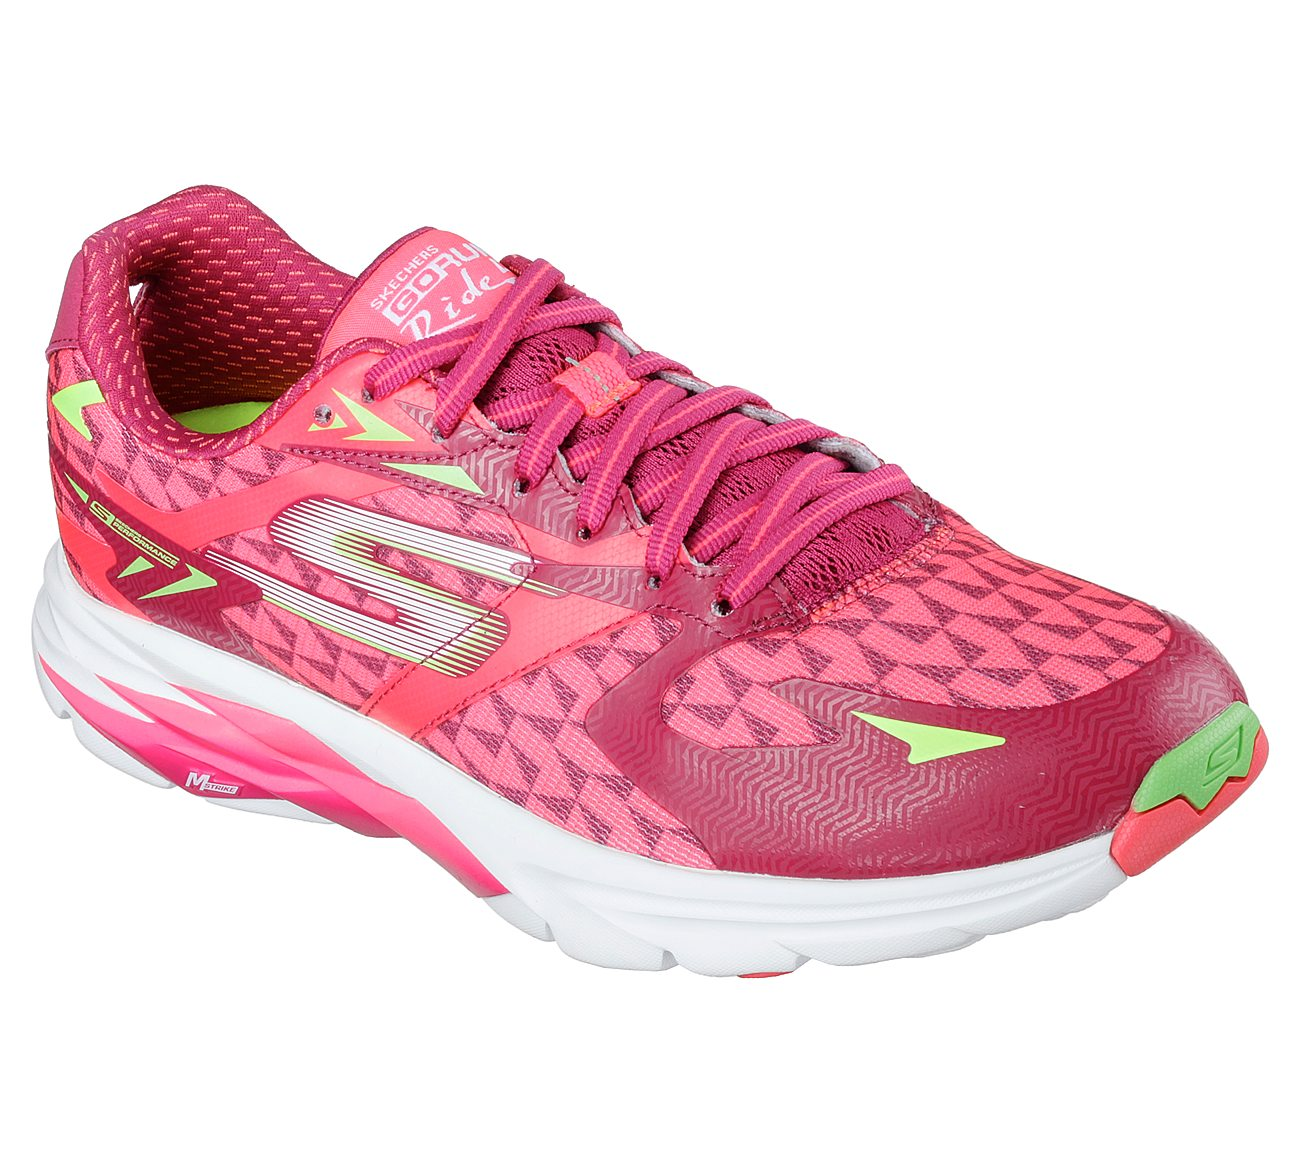 Buy SKECHERS Skechers GOrun Ride 5